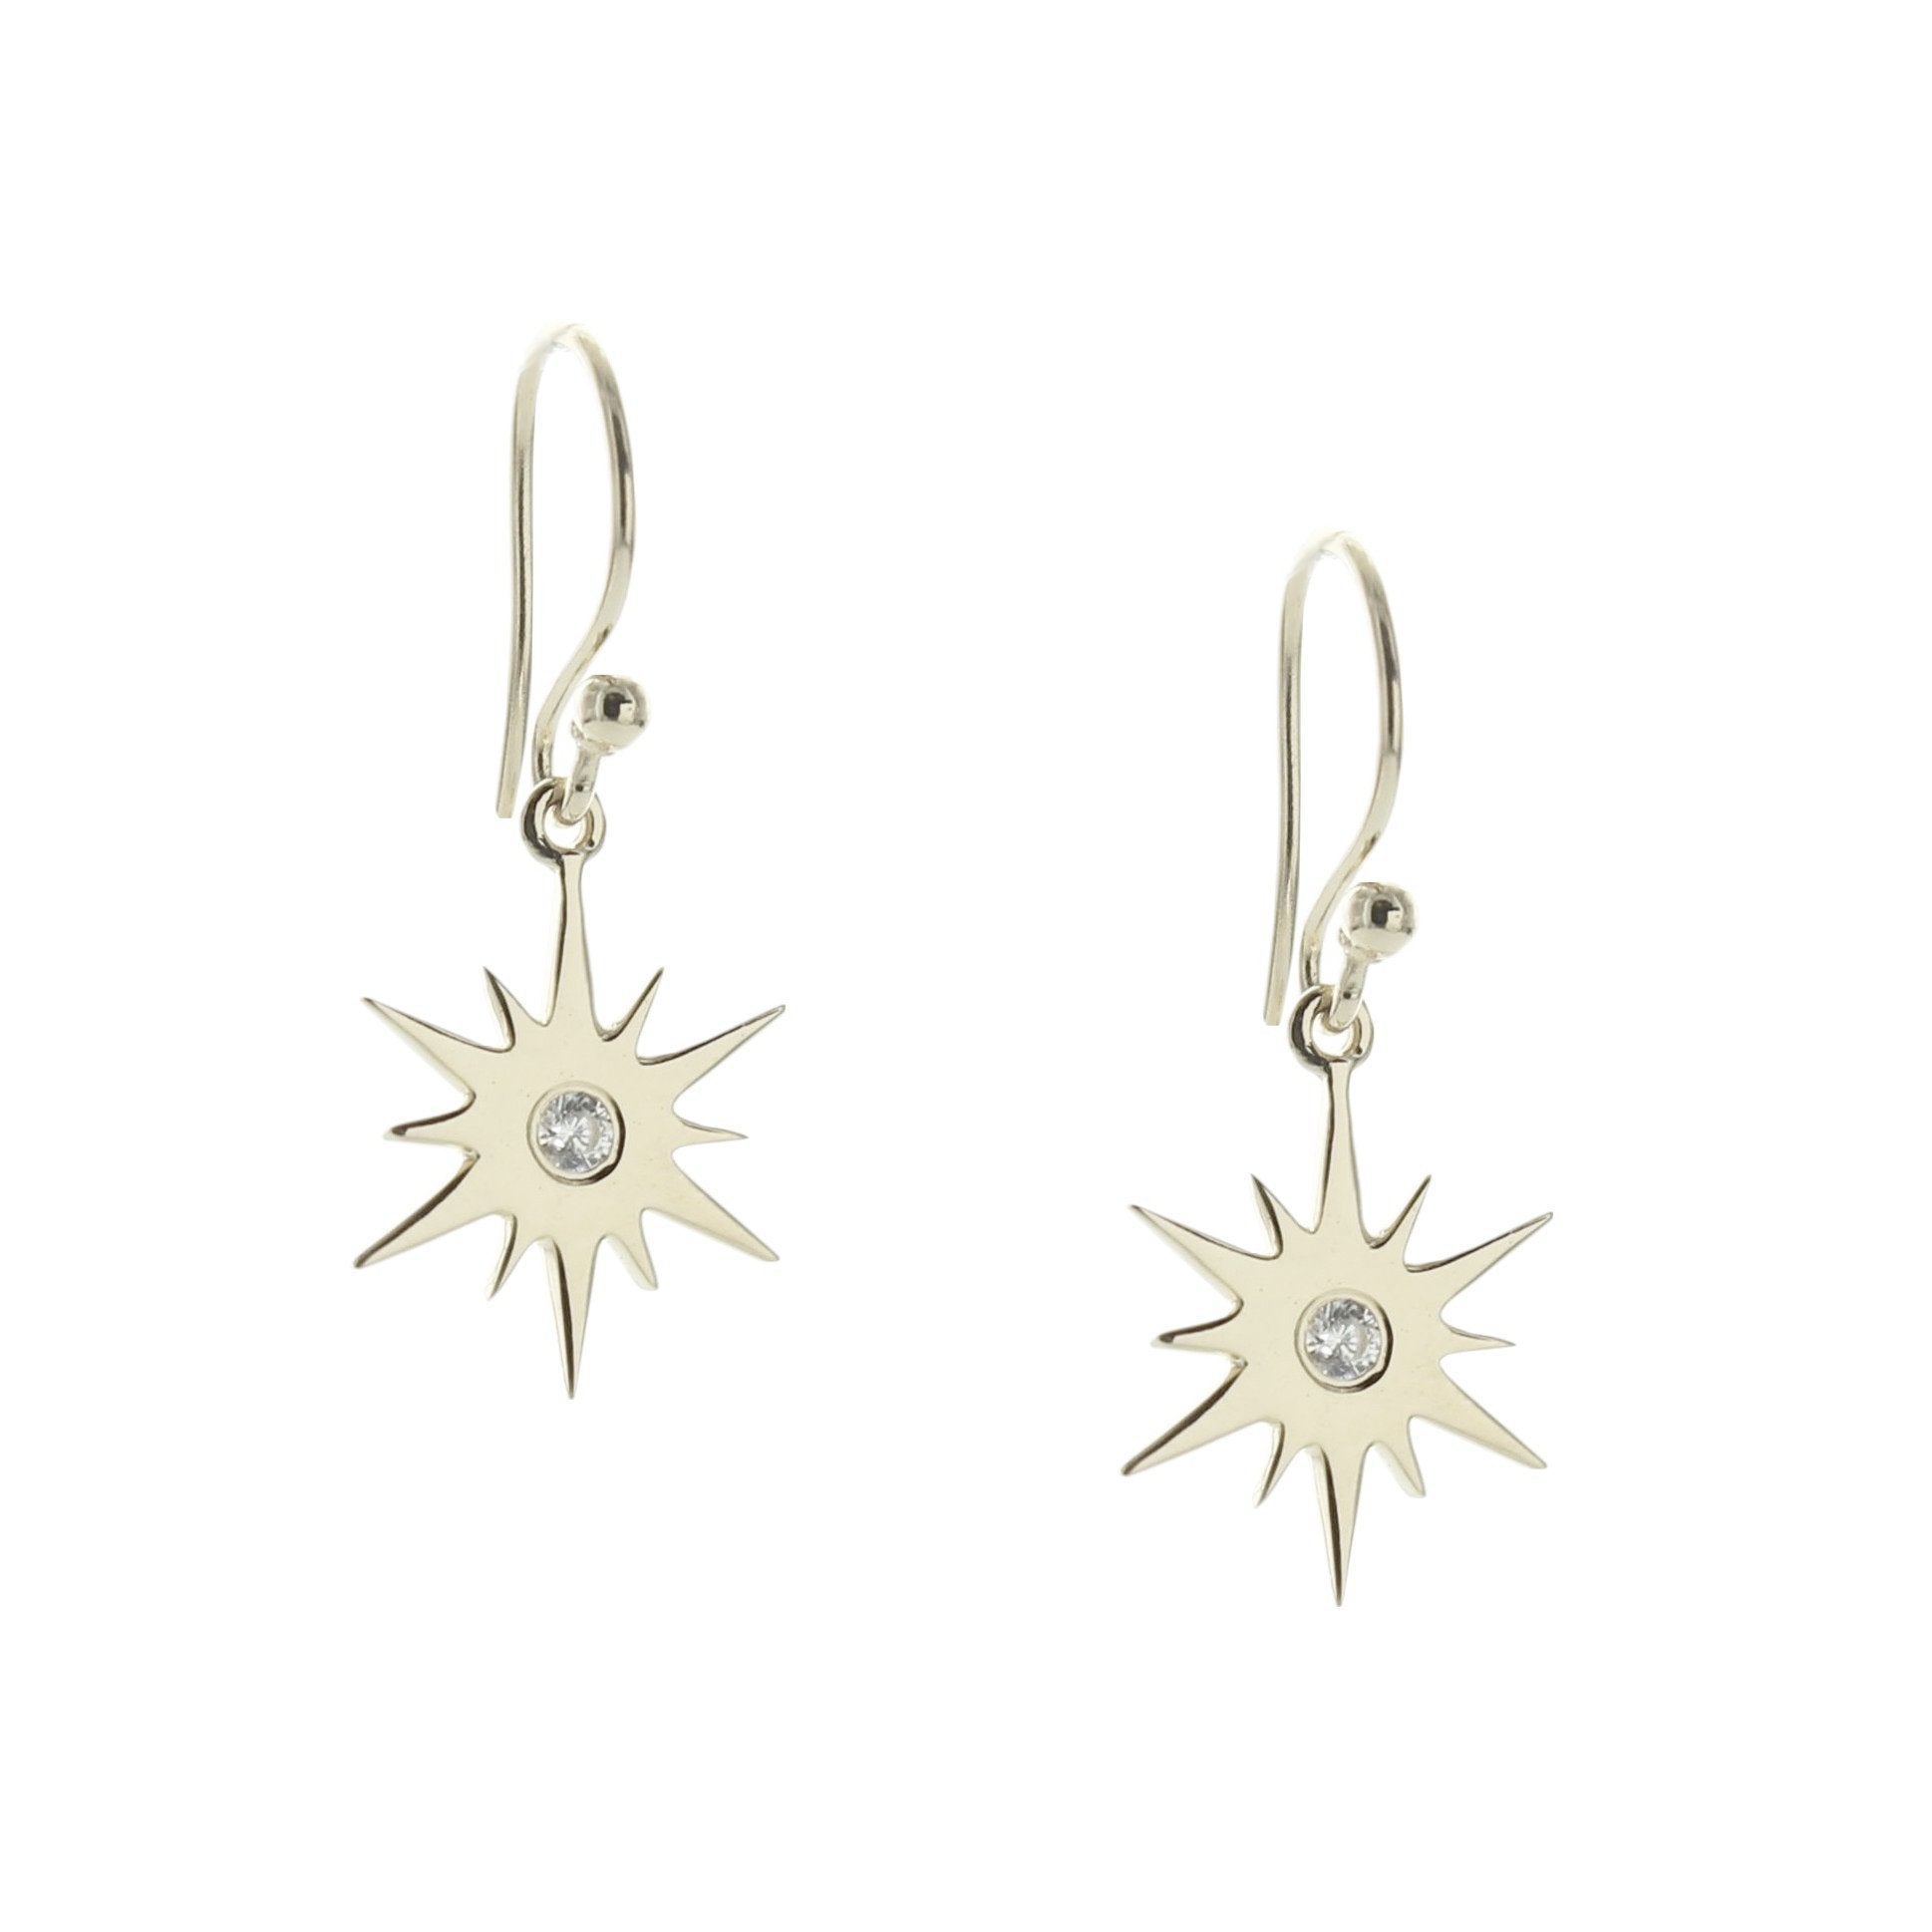 BELIEVE STELLAR DROP EARRINGS - CUBIC ZIRCONIA & SILVER - SO PRETTY CARA COTTER